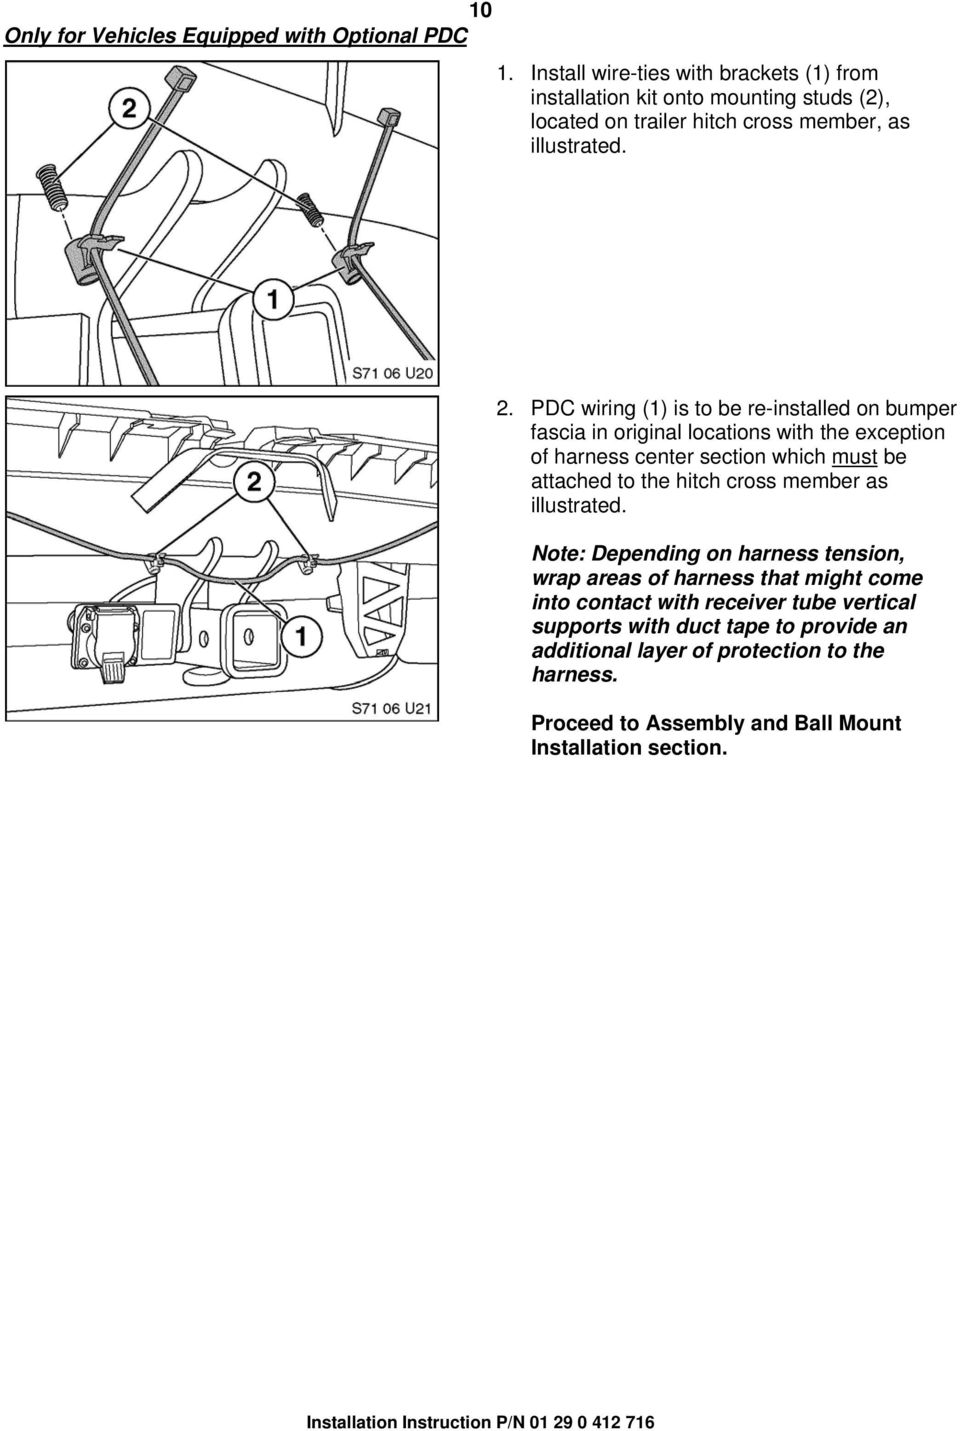 Installation Instructions Pdf Australian Wiring Harness In Addition Electric Trailer Brake Pdc 1 Is To Be Re Installed On Bumper Fascia Original